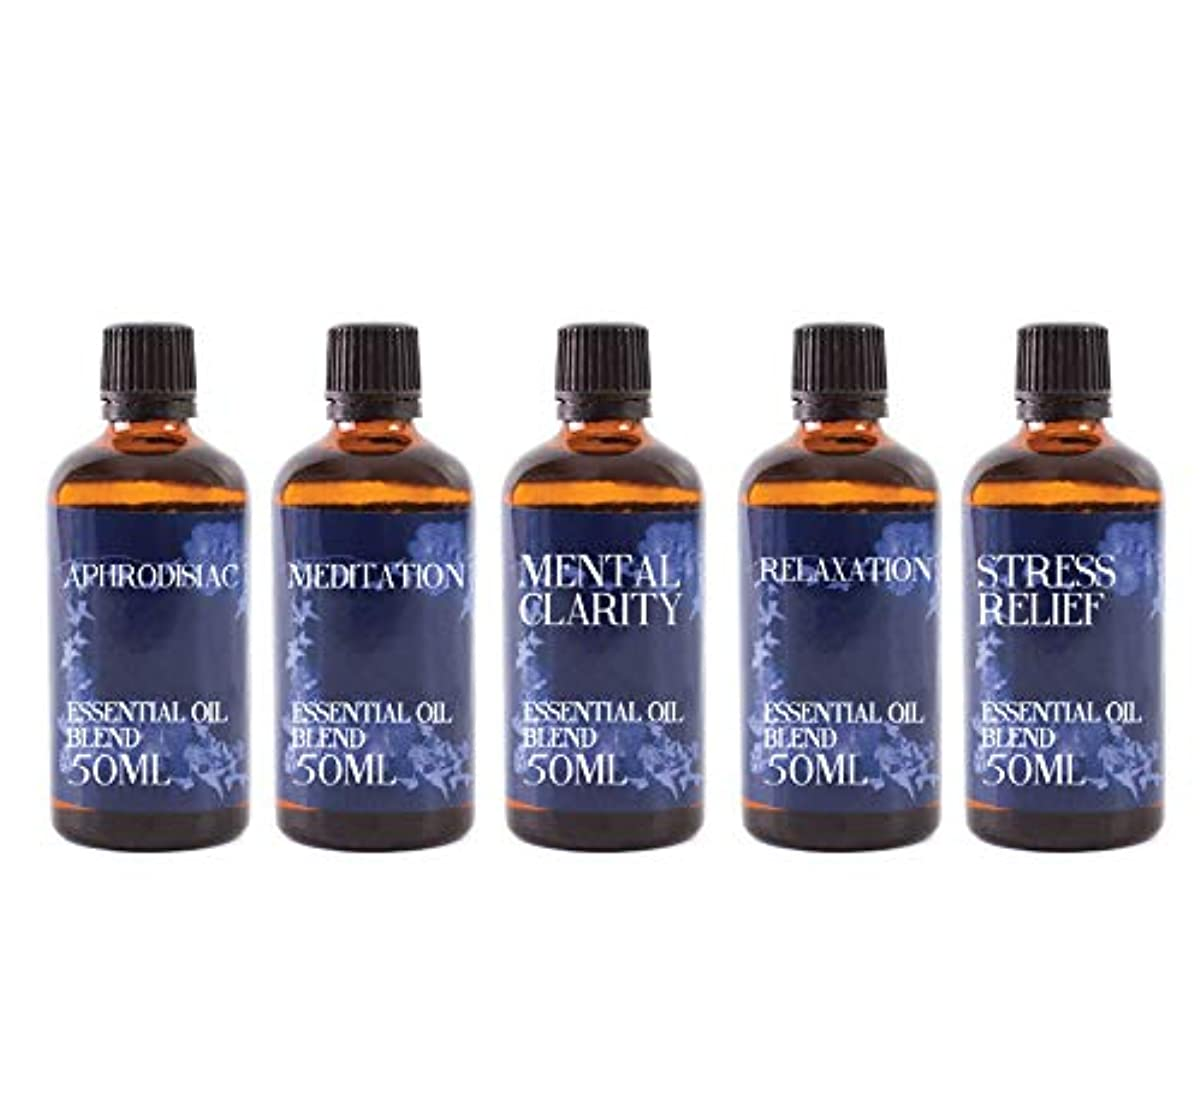 Mystix London | Gift Starter Pack of 5 x 50ml - Modern Day Remedies - Essential Oil Blends